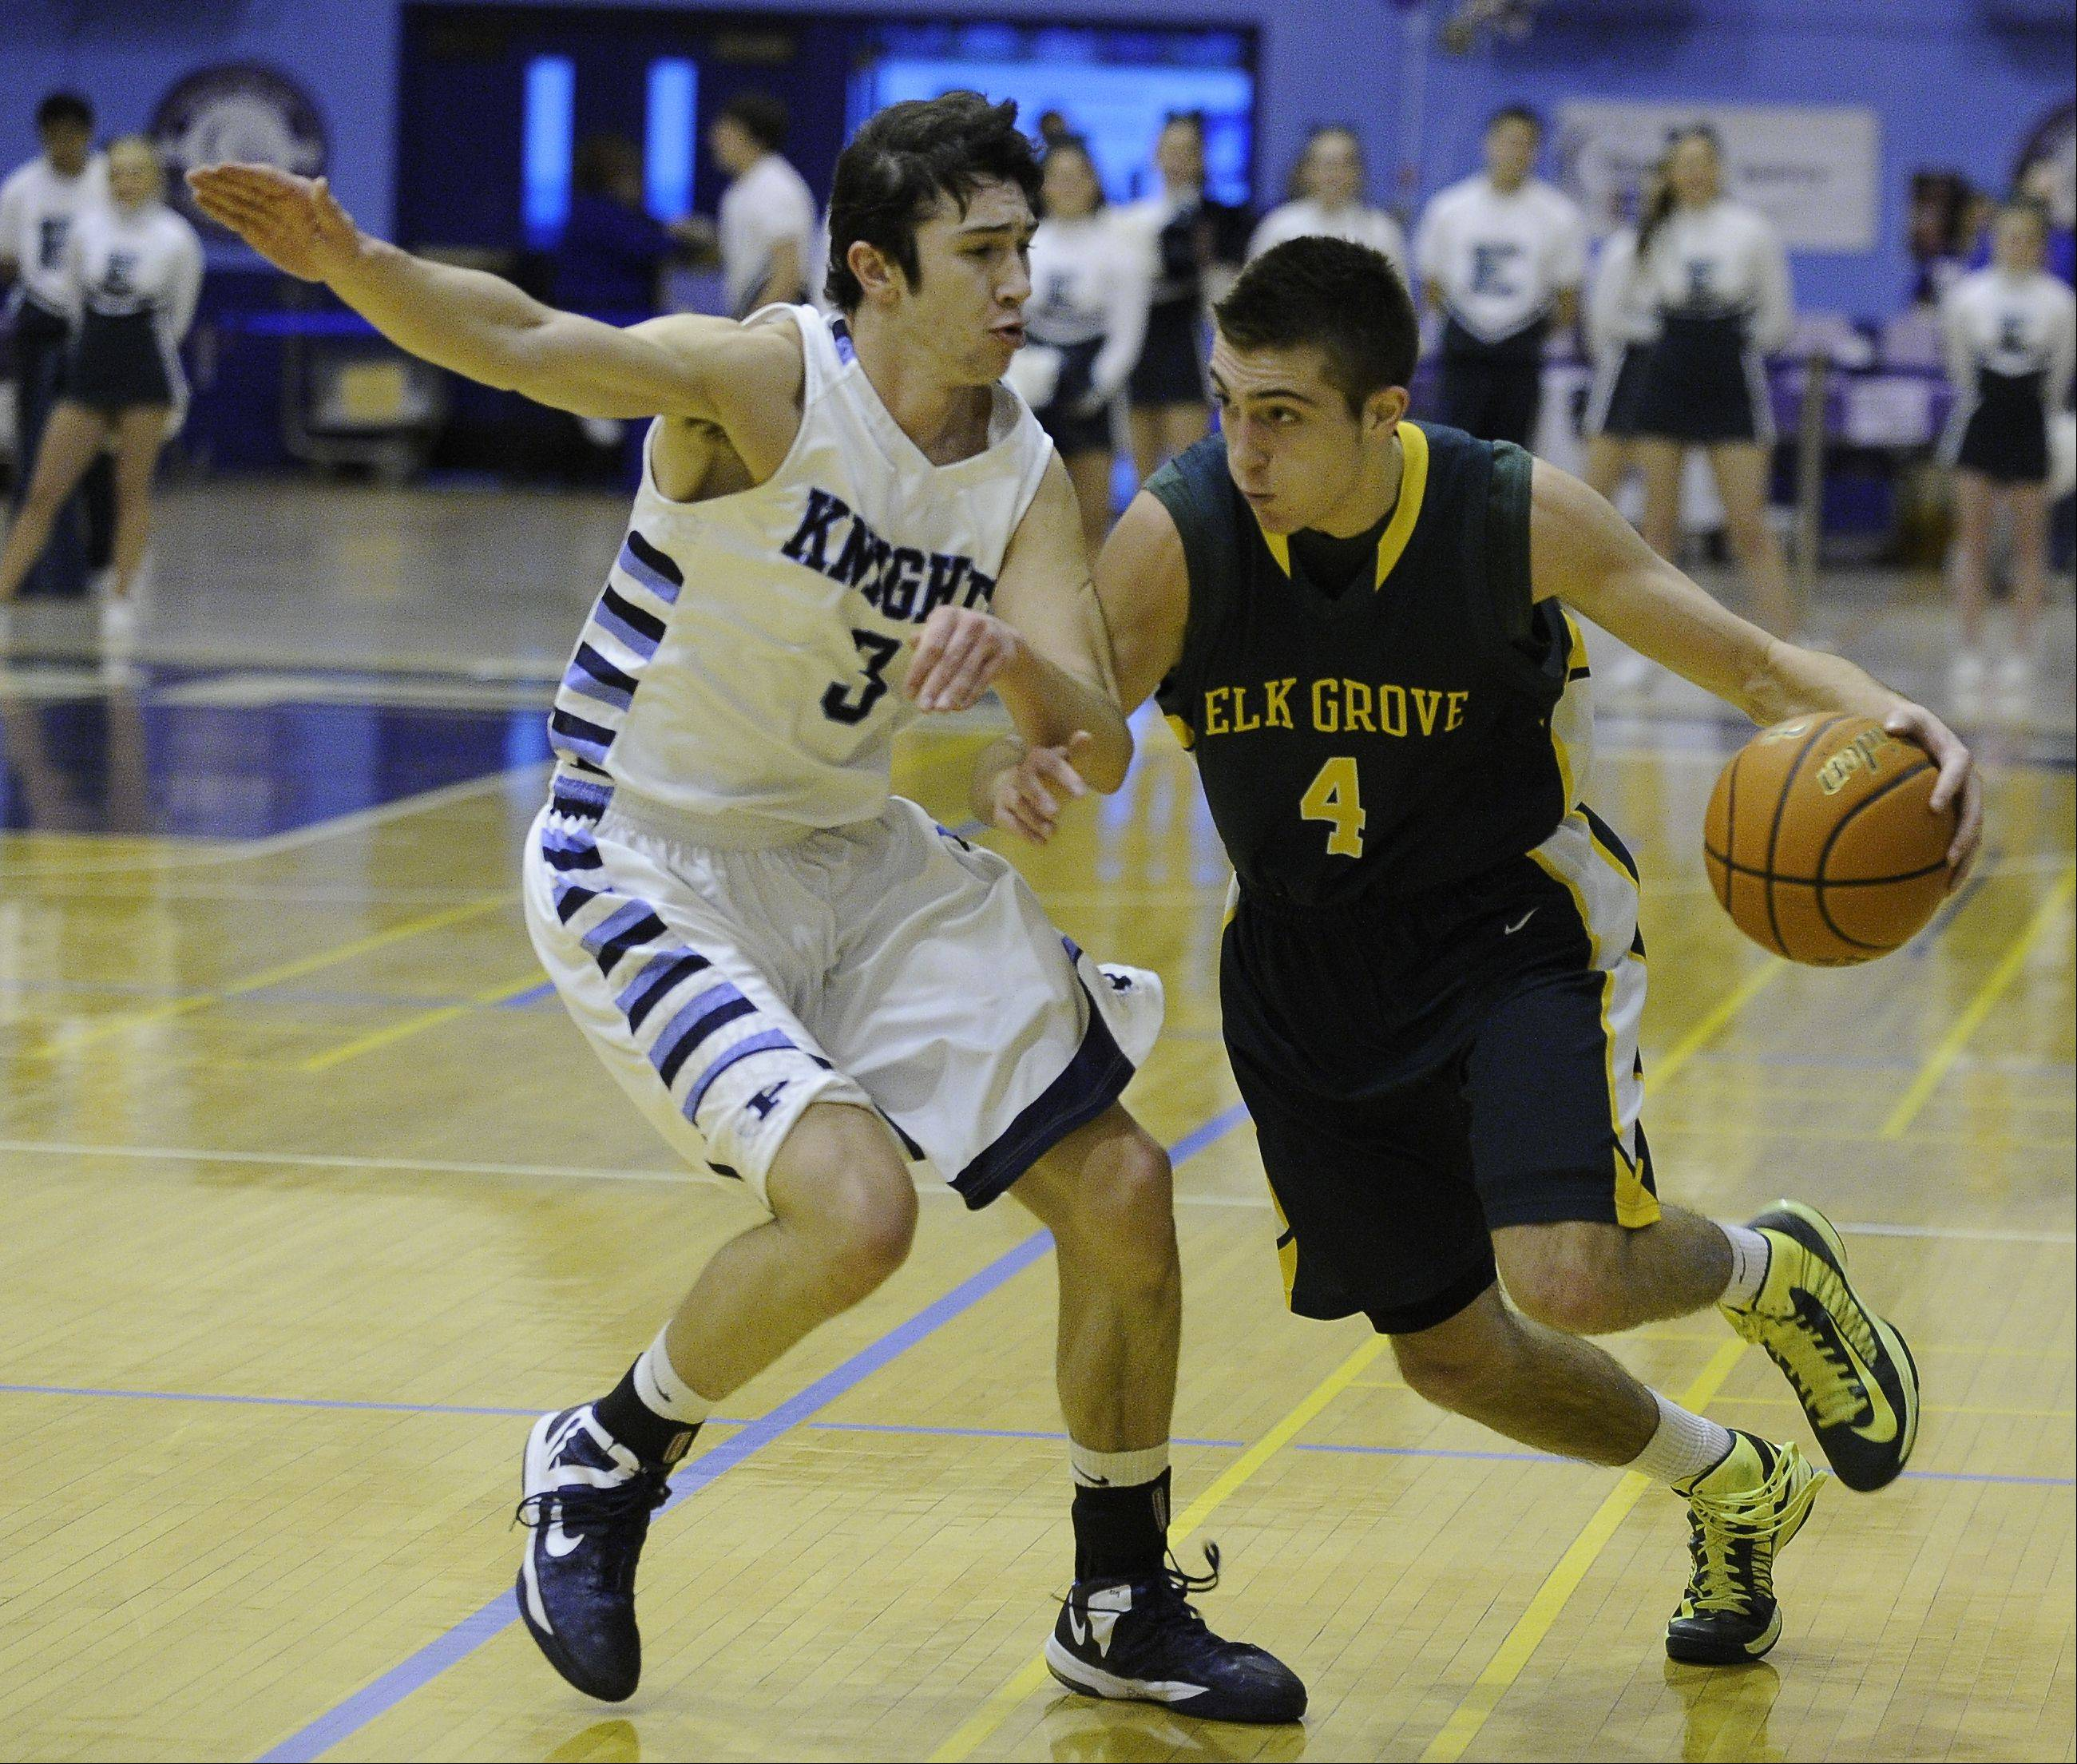 Images from the Elk Grove vs. Prospect boys basketball game on Friday, February 8th.